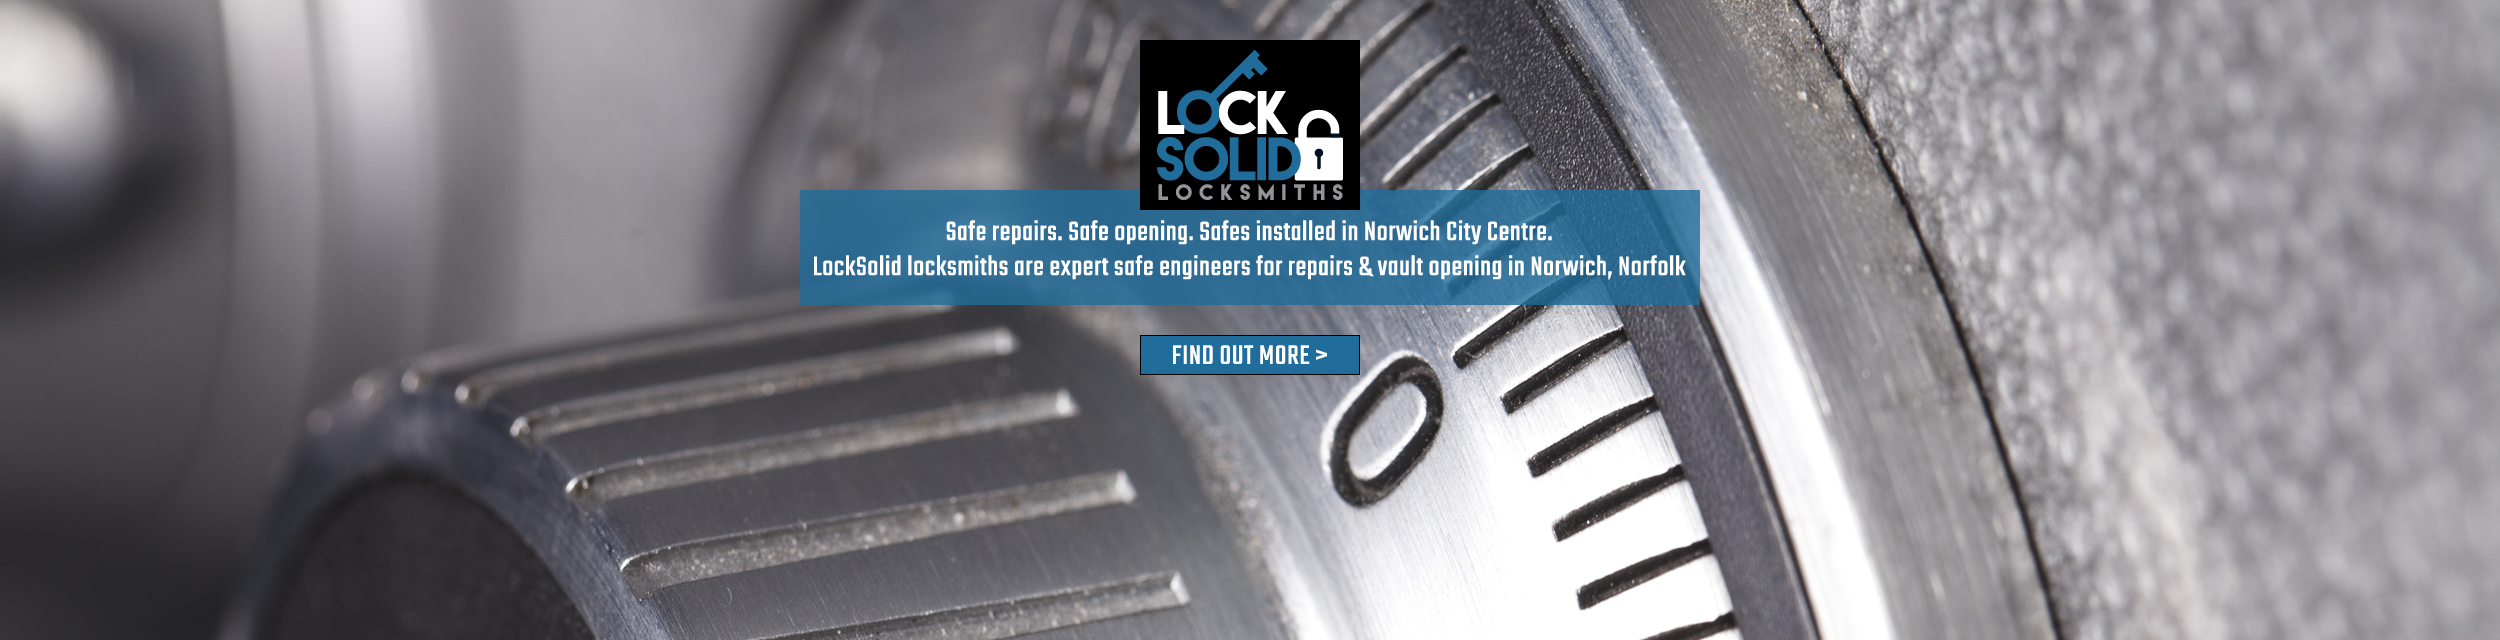 LockSolid Locksmiths Norwich | Safe Locksmiths - Safe repairs, safe opening, safes installed in Norwich City Centre. LockSolid Locksmiths are expert safe engineers for repairs & vault opening in Norwich, Norfolk. Click to find out more!